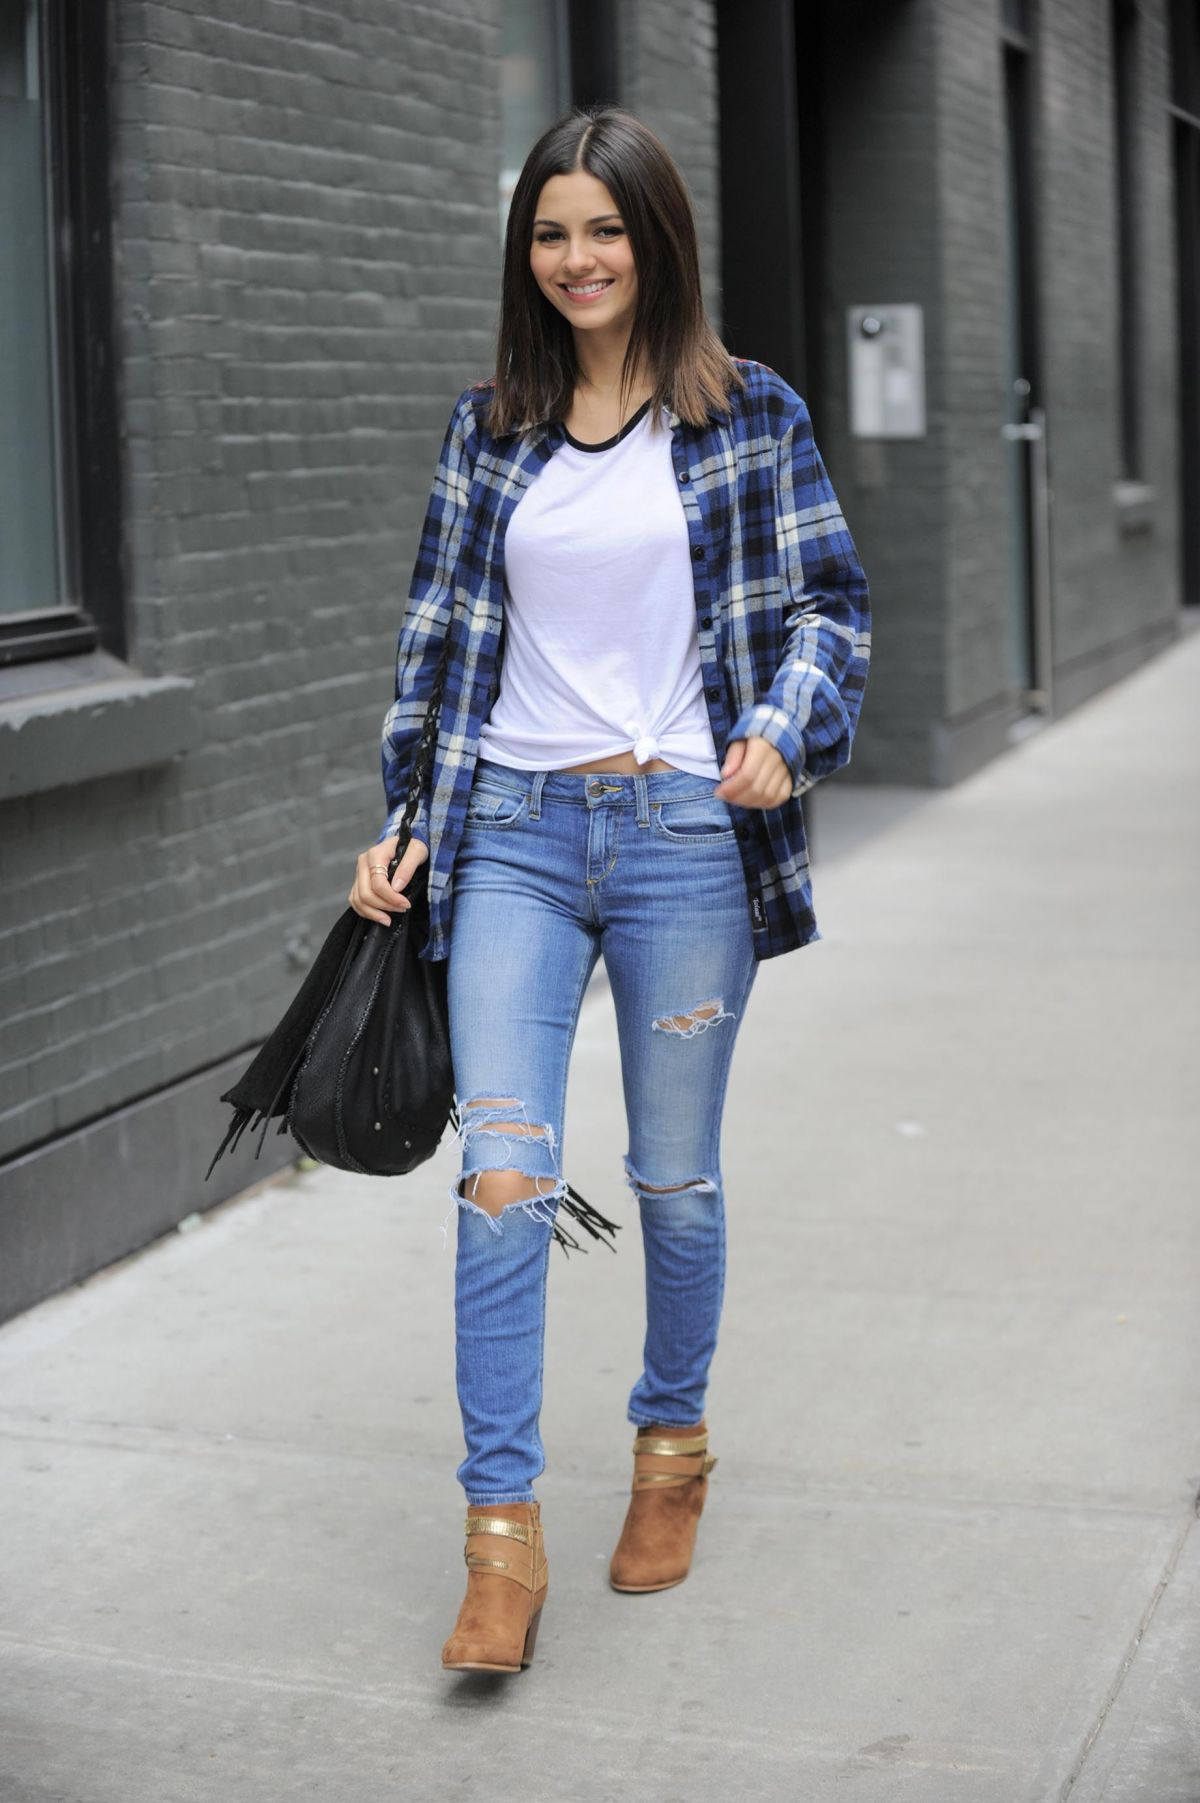 Victoria Justice In Jeans Out And About In New York Hawtcelebs Hawtcelebs